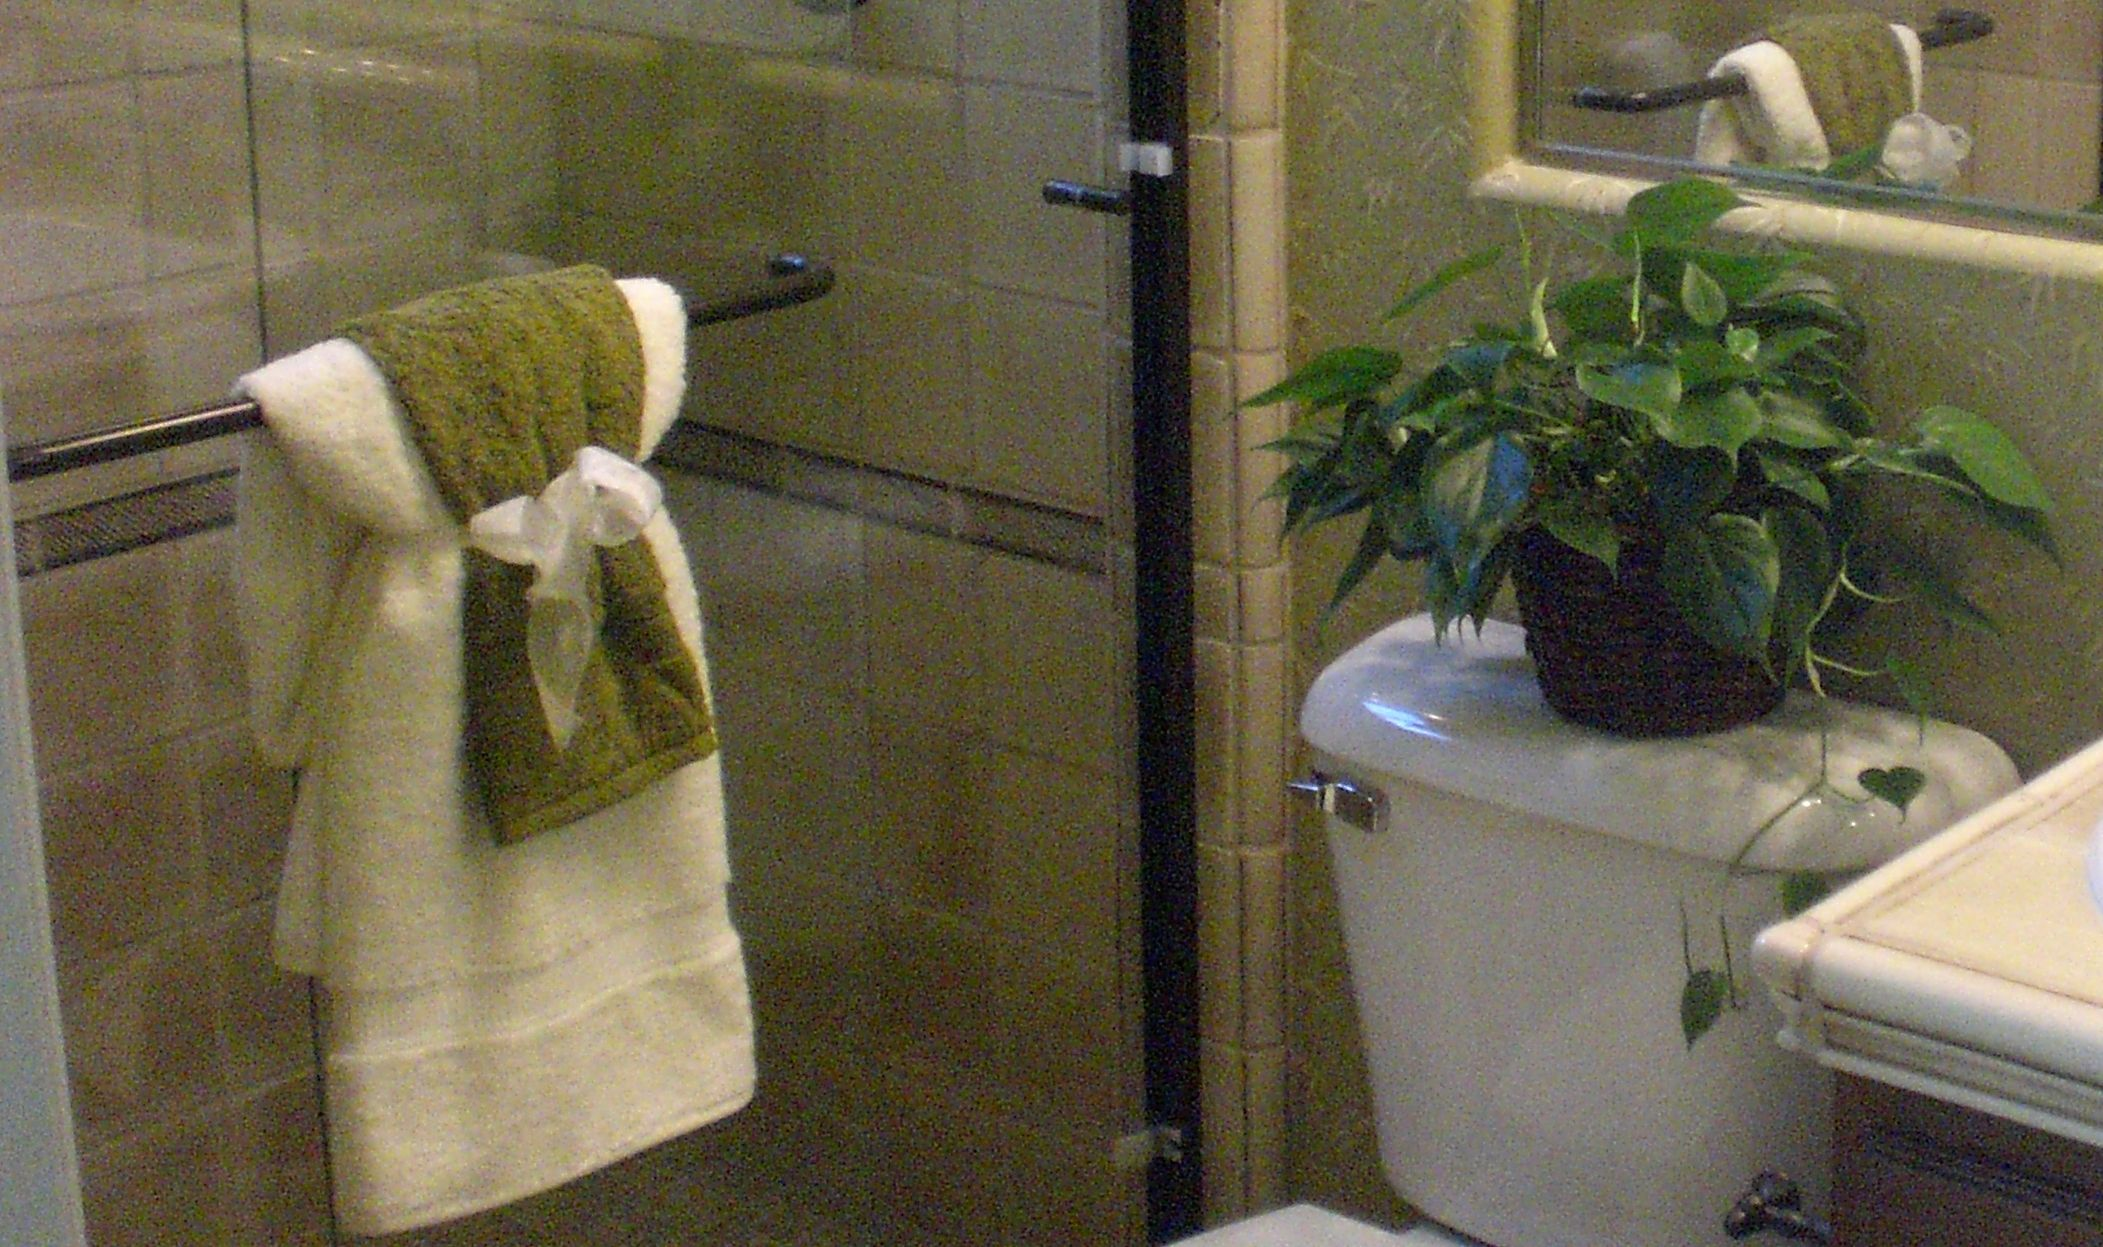 Towel Decorations Everyday Items Towels And Bathroom - Bath towel hanging ideas for small bathroom ideas